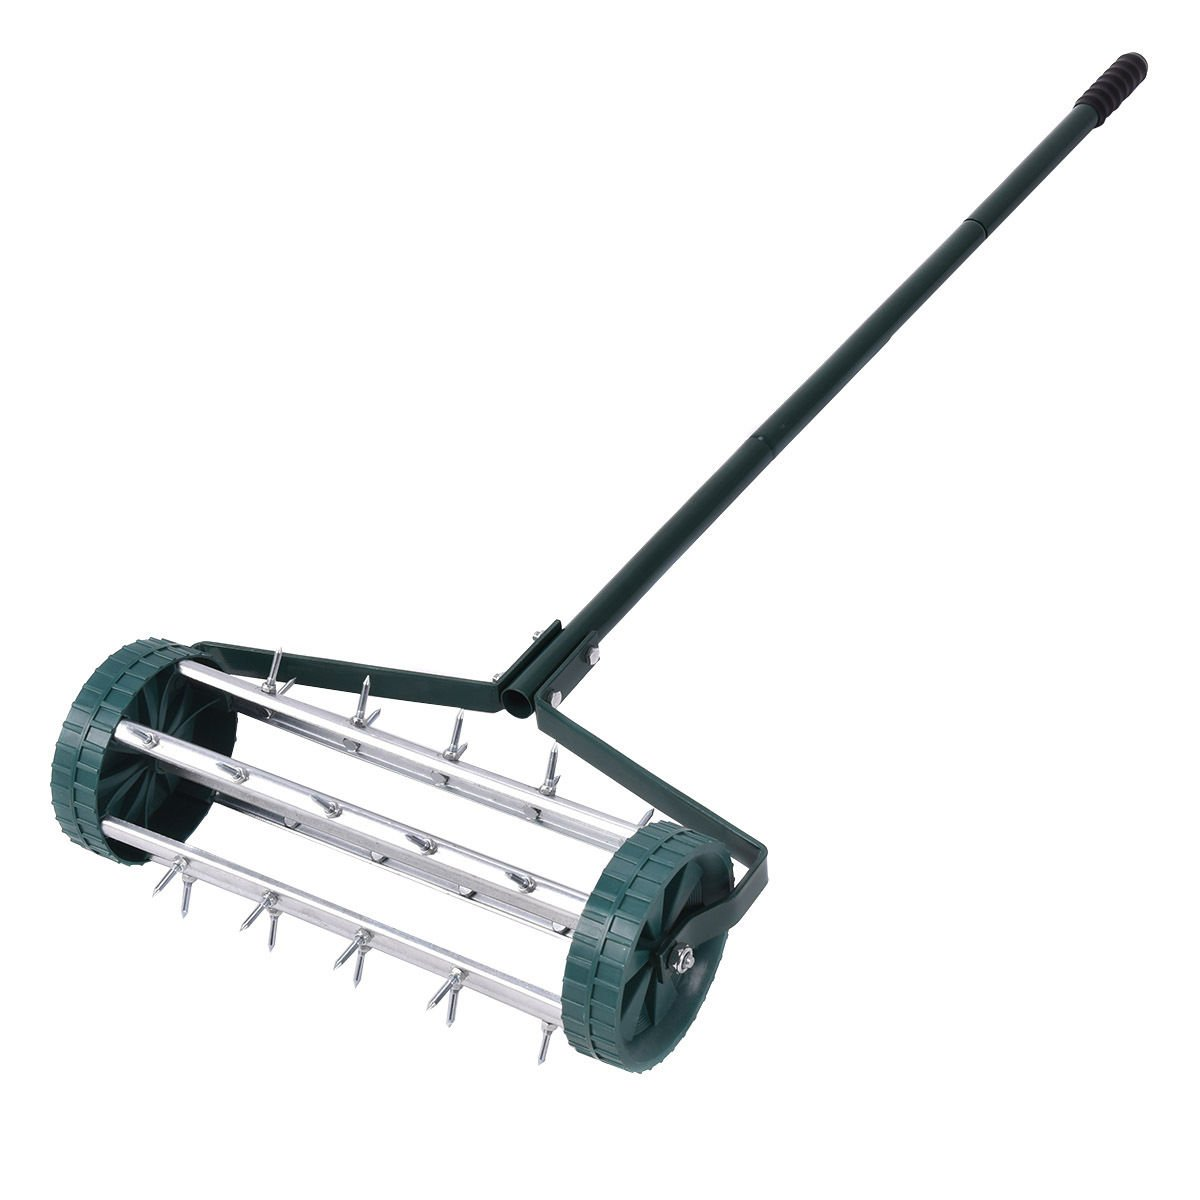 Globe House Products GHP Green Tubular Steel & Plastic 6'' Diameter Rolling Garden Lawn Aerator Roller